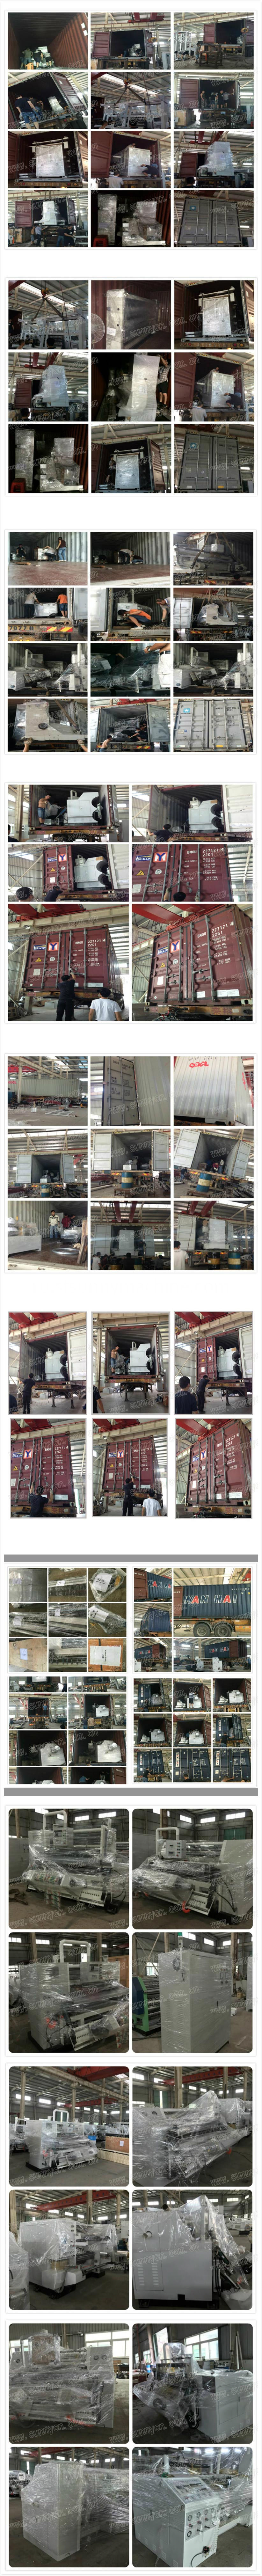 CPE CASTING FILM MACHINE1